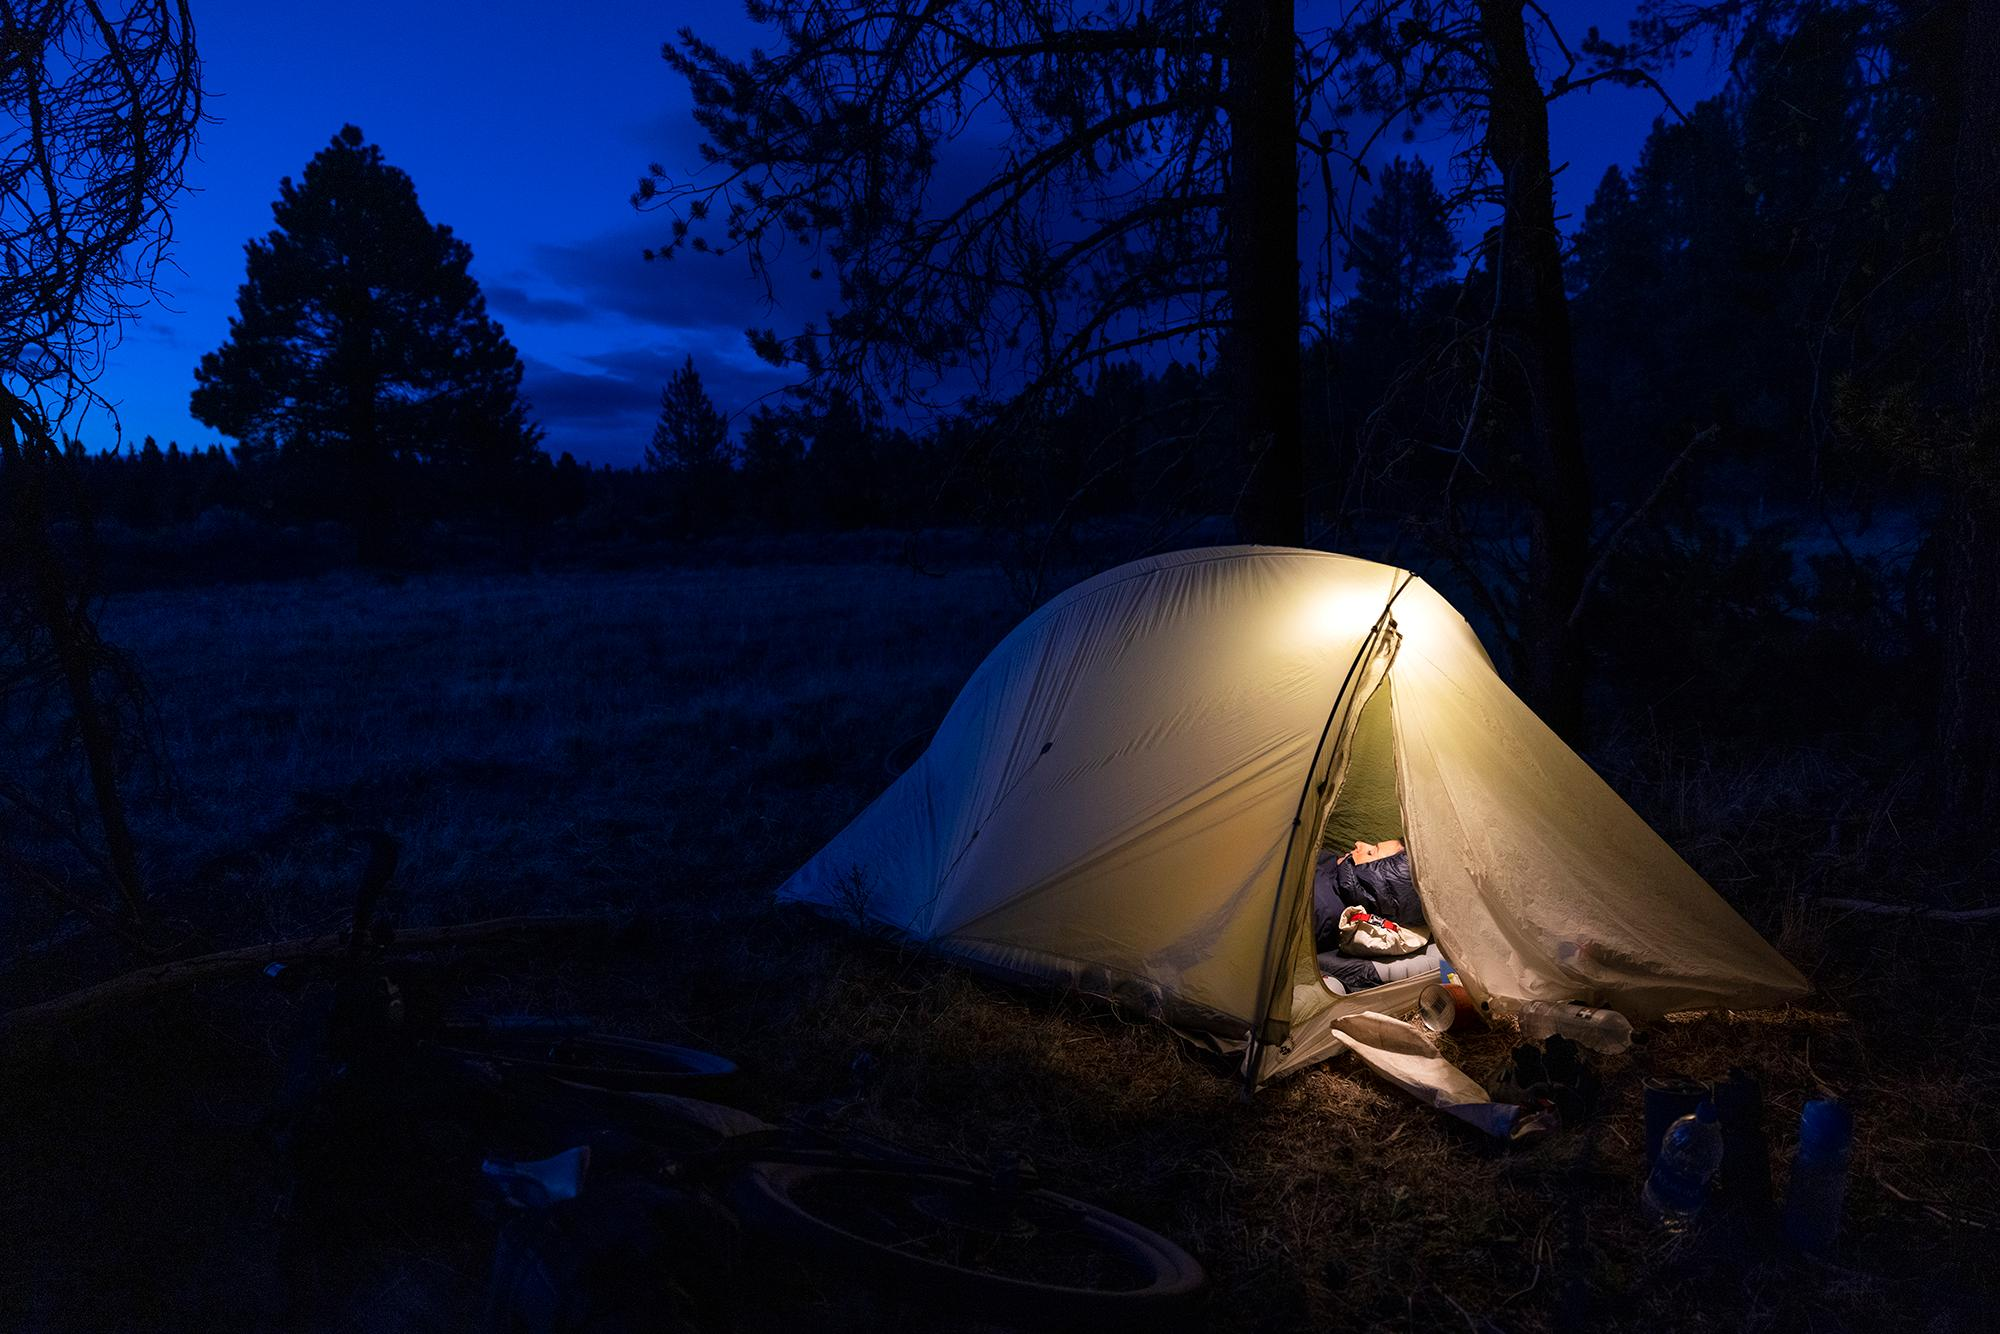 Camping along the OC&E Woods Line State Trail. (Rugile Kaladyte)